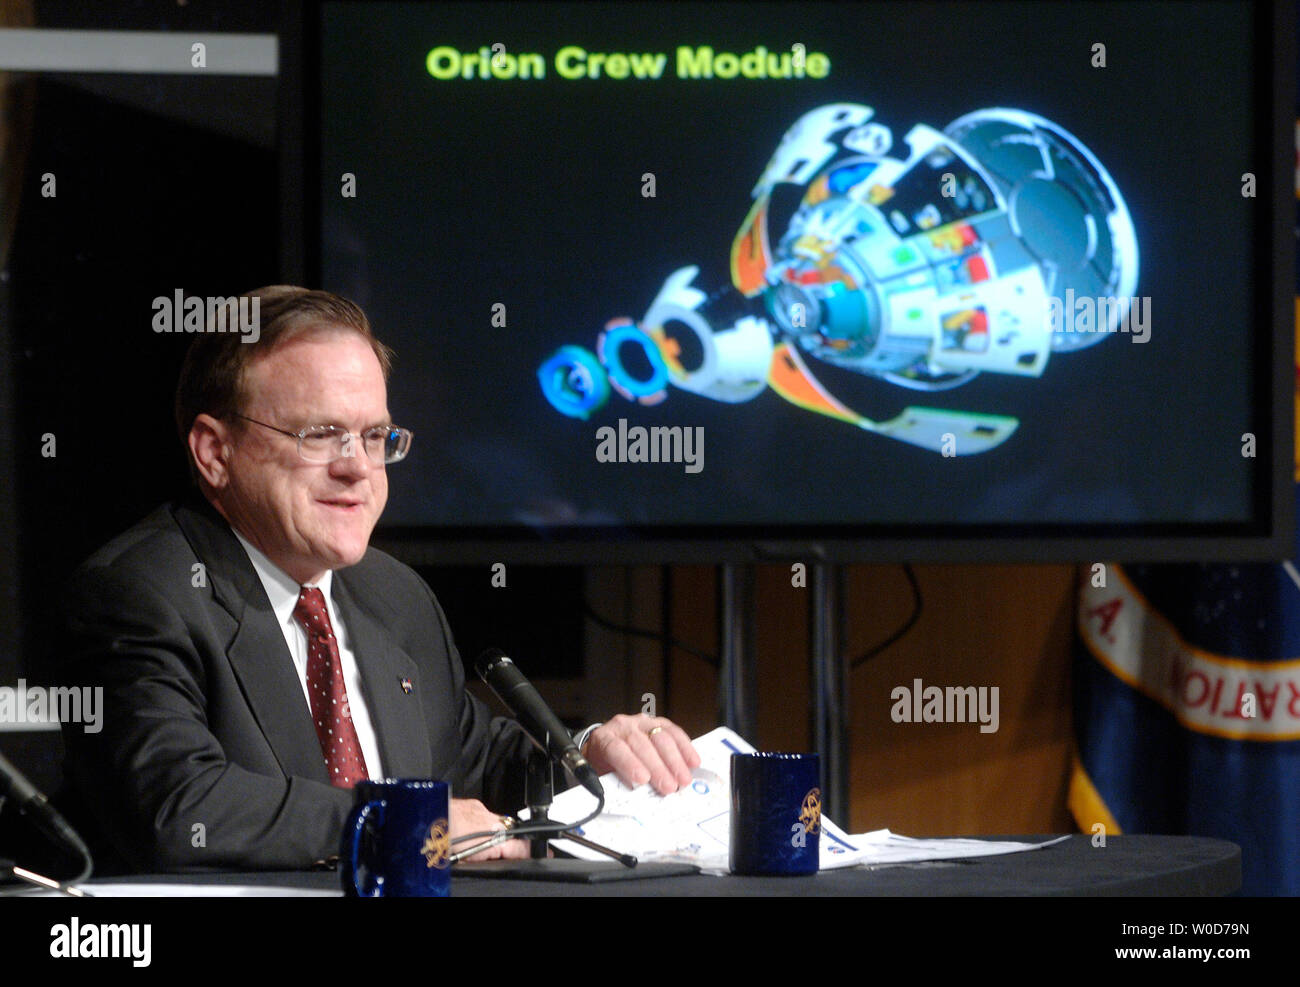 Orion Project Manager Skip Hatfield speaks at a  press conference anouncing that Lockheed Martin Corp was selected as the prime contractor for the design, development and construction of the Orion spacecraft, at NASA headquarters in Washington on August 31, 2006. The Orion will be the next generation of human spacecraft which  NASA hopes to have in orbit in 2012.  (UPI Photo/Kevin Dietsch) - Stock Image